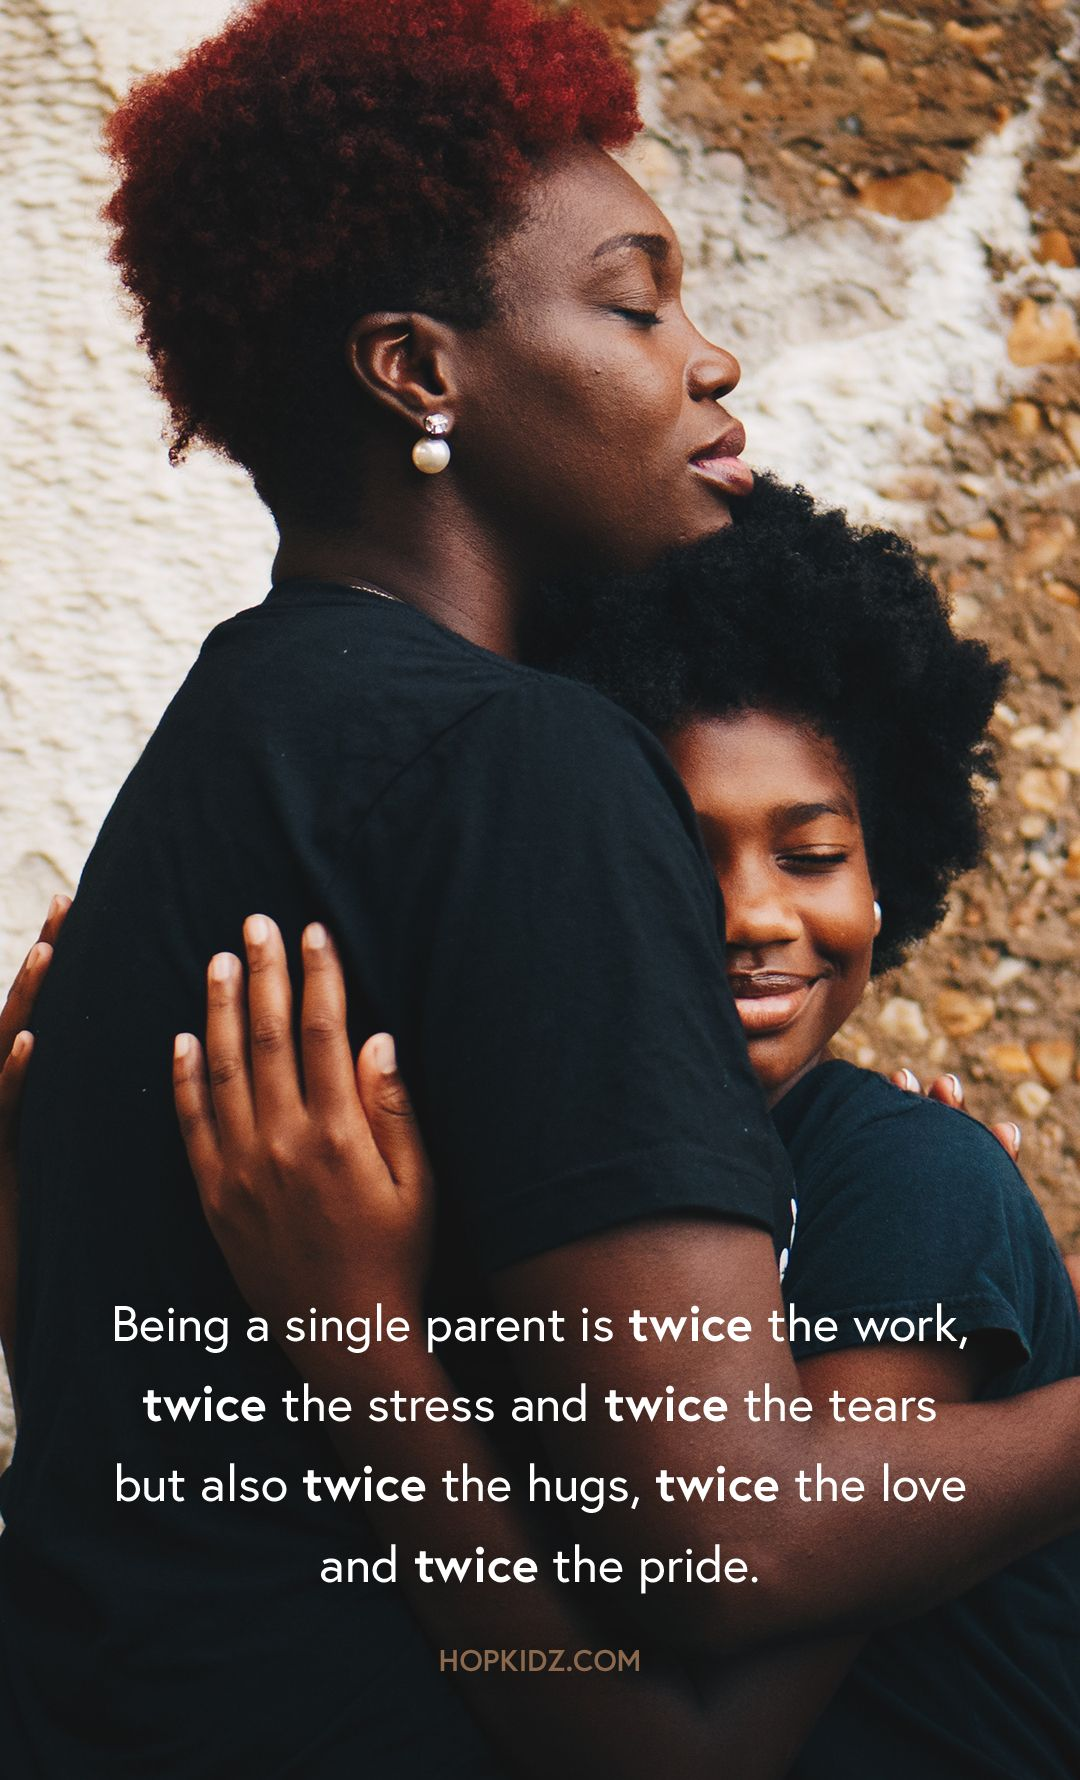 tunkhannock single parents The tough side of single parenthood still, it's tough being a single mom although the media often portray them as go-it-alone types, that's seldom the case.